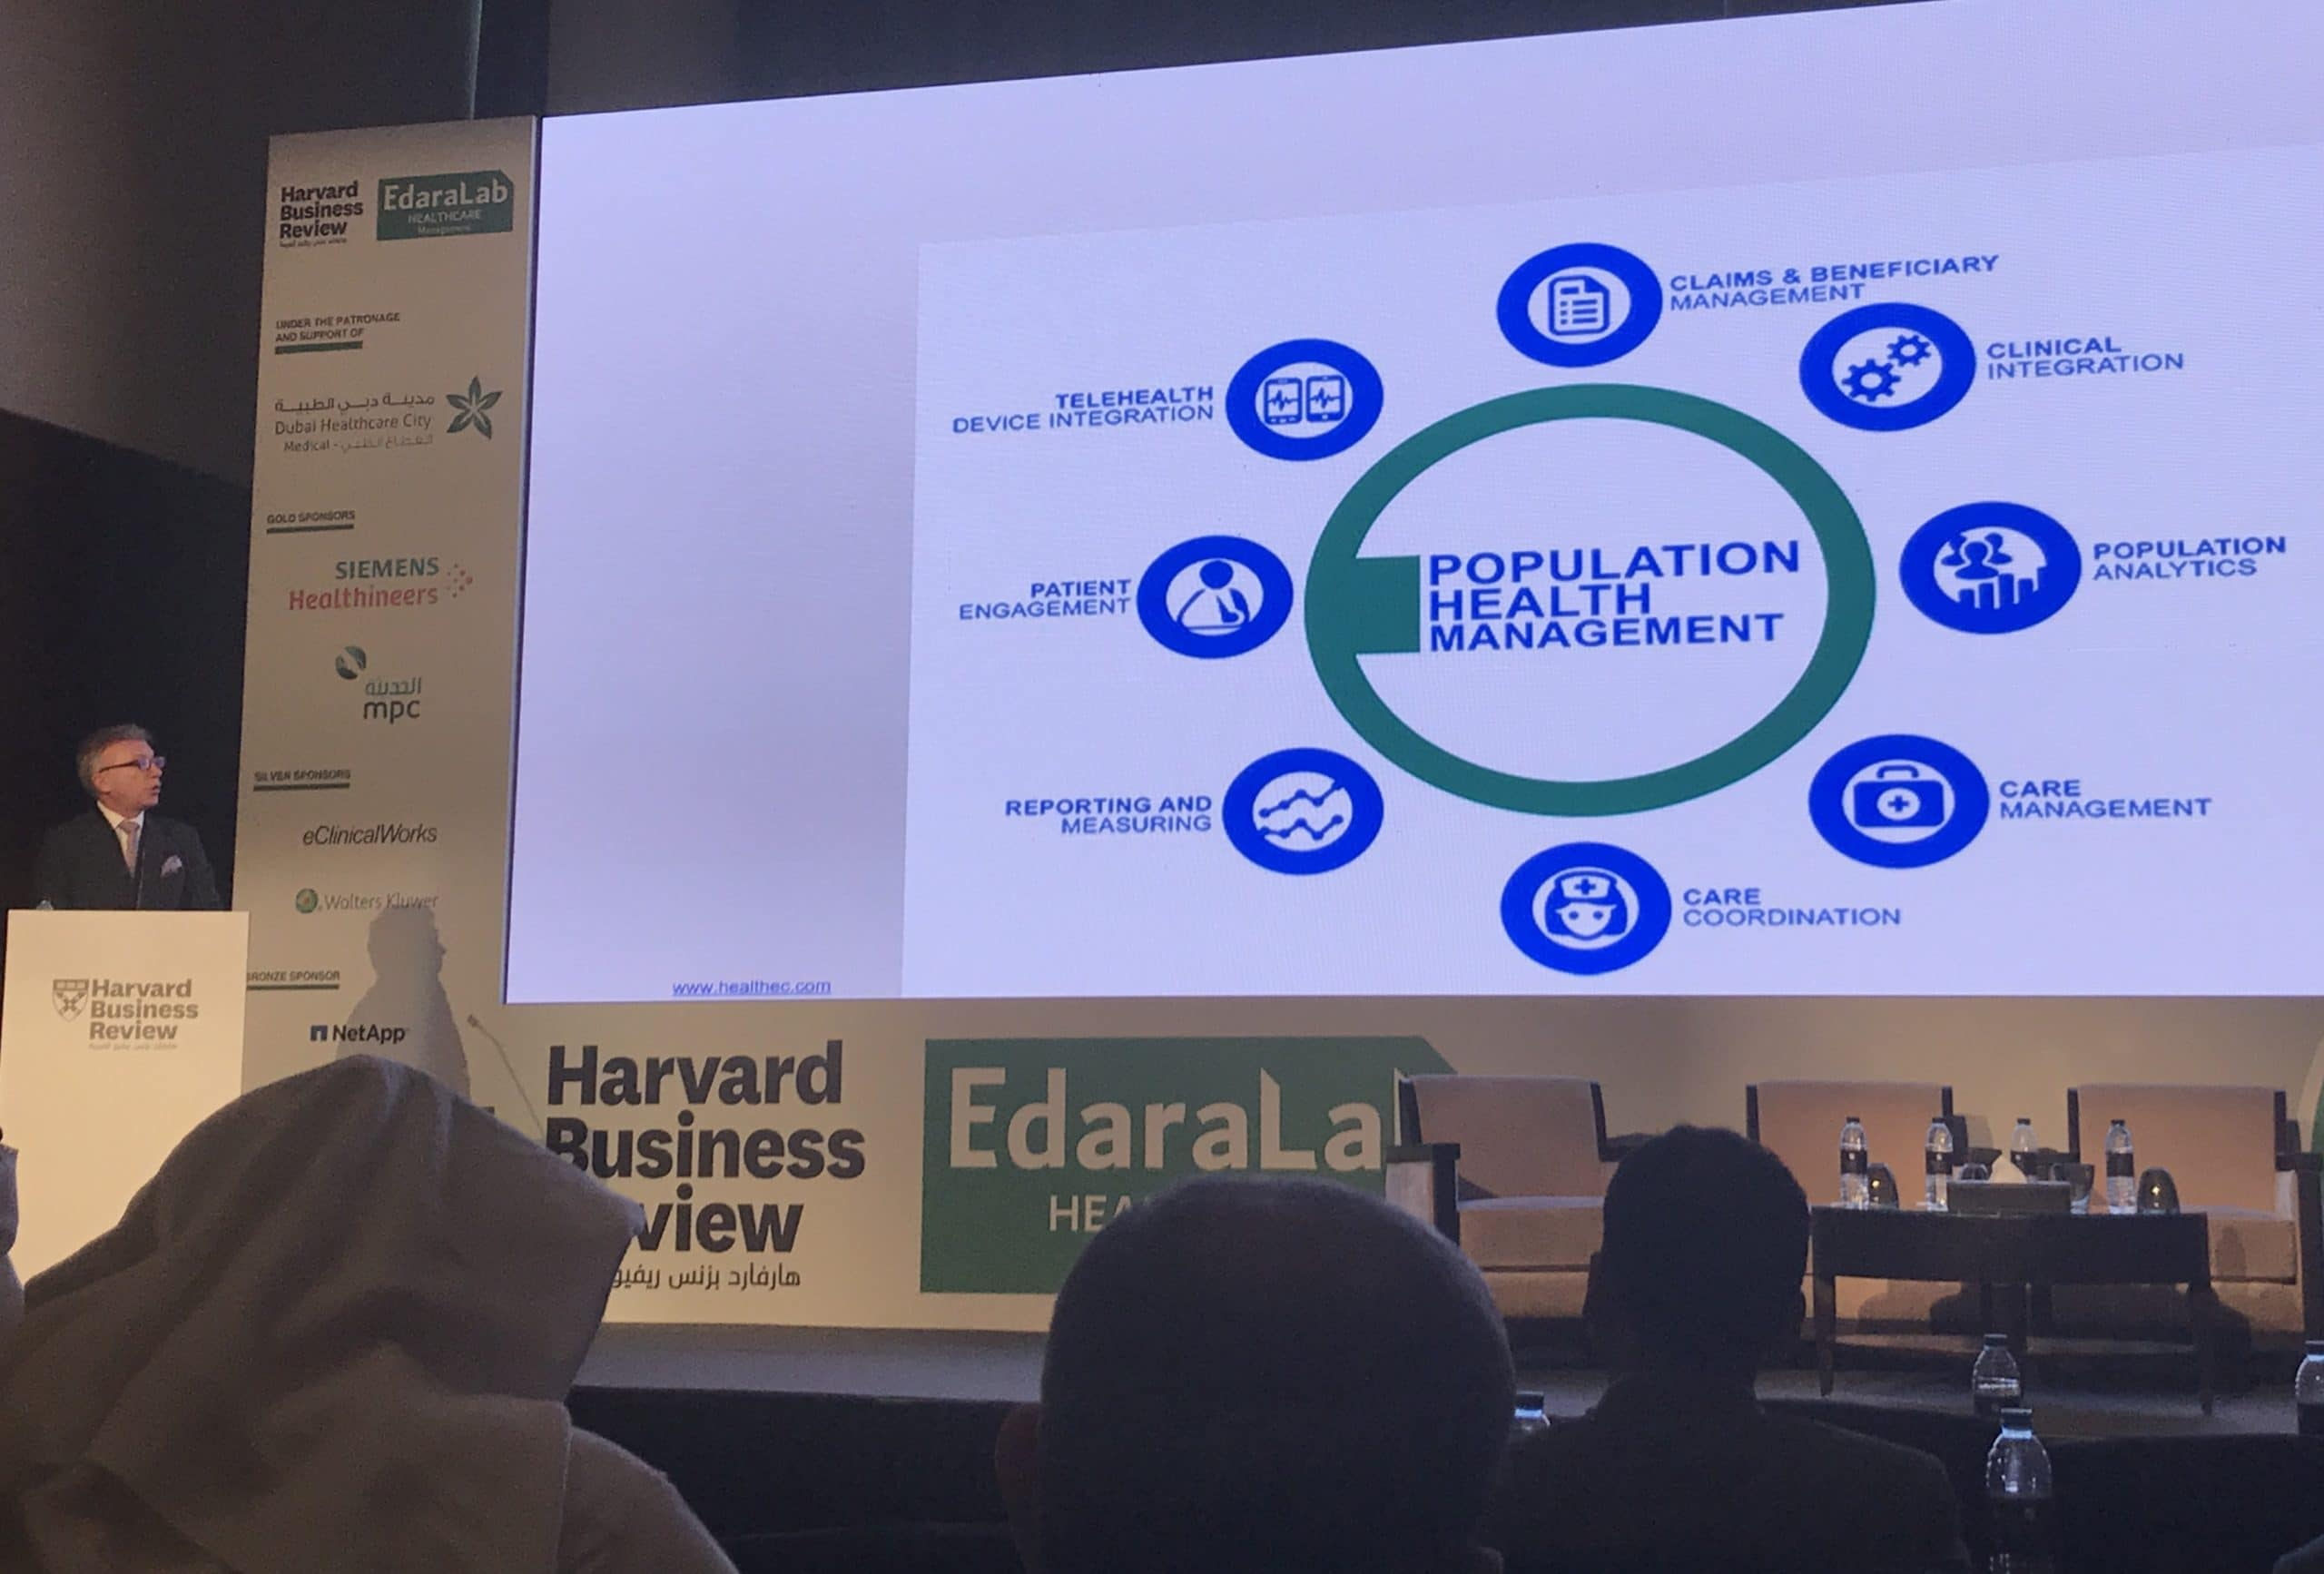 Dr. Sarper Tanli speaking at the Harvard Business Review Arabias EdaraLab